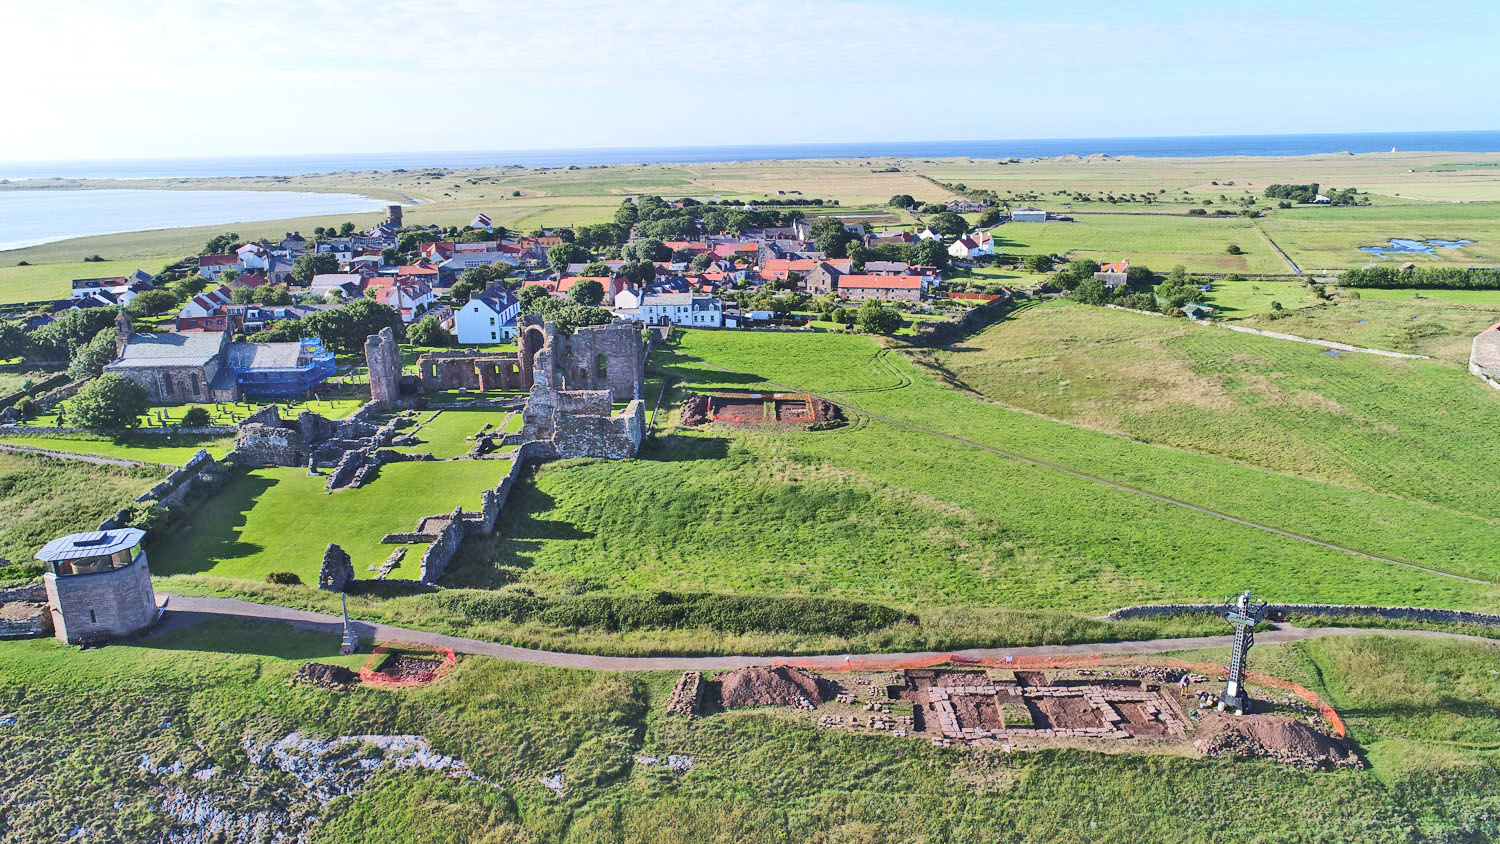 Summer season of community archaeology has revealed more tantalising insights into Holy Island's past.